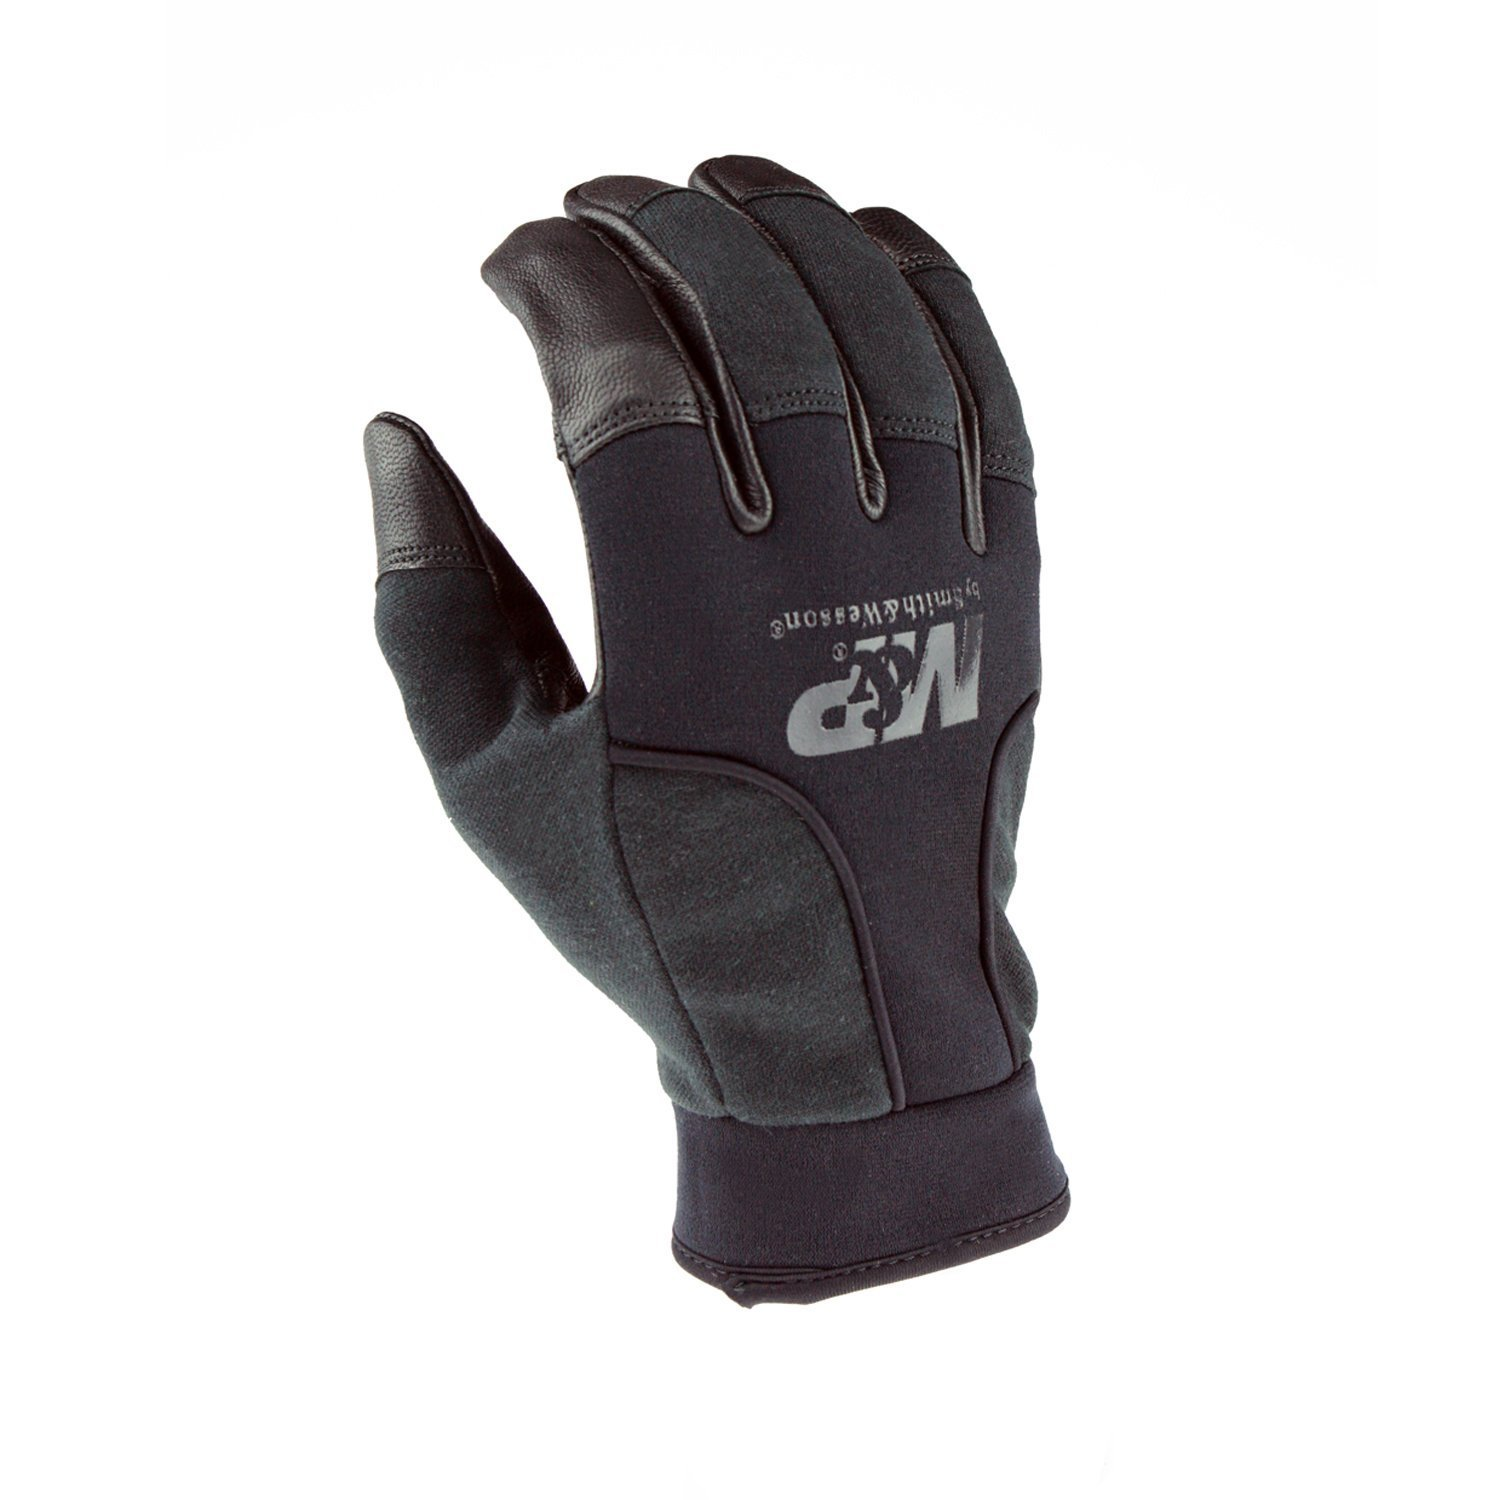 M&P Smith & Wesson MP303 Spandex Back Goat Skin Gloves - X-Large